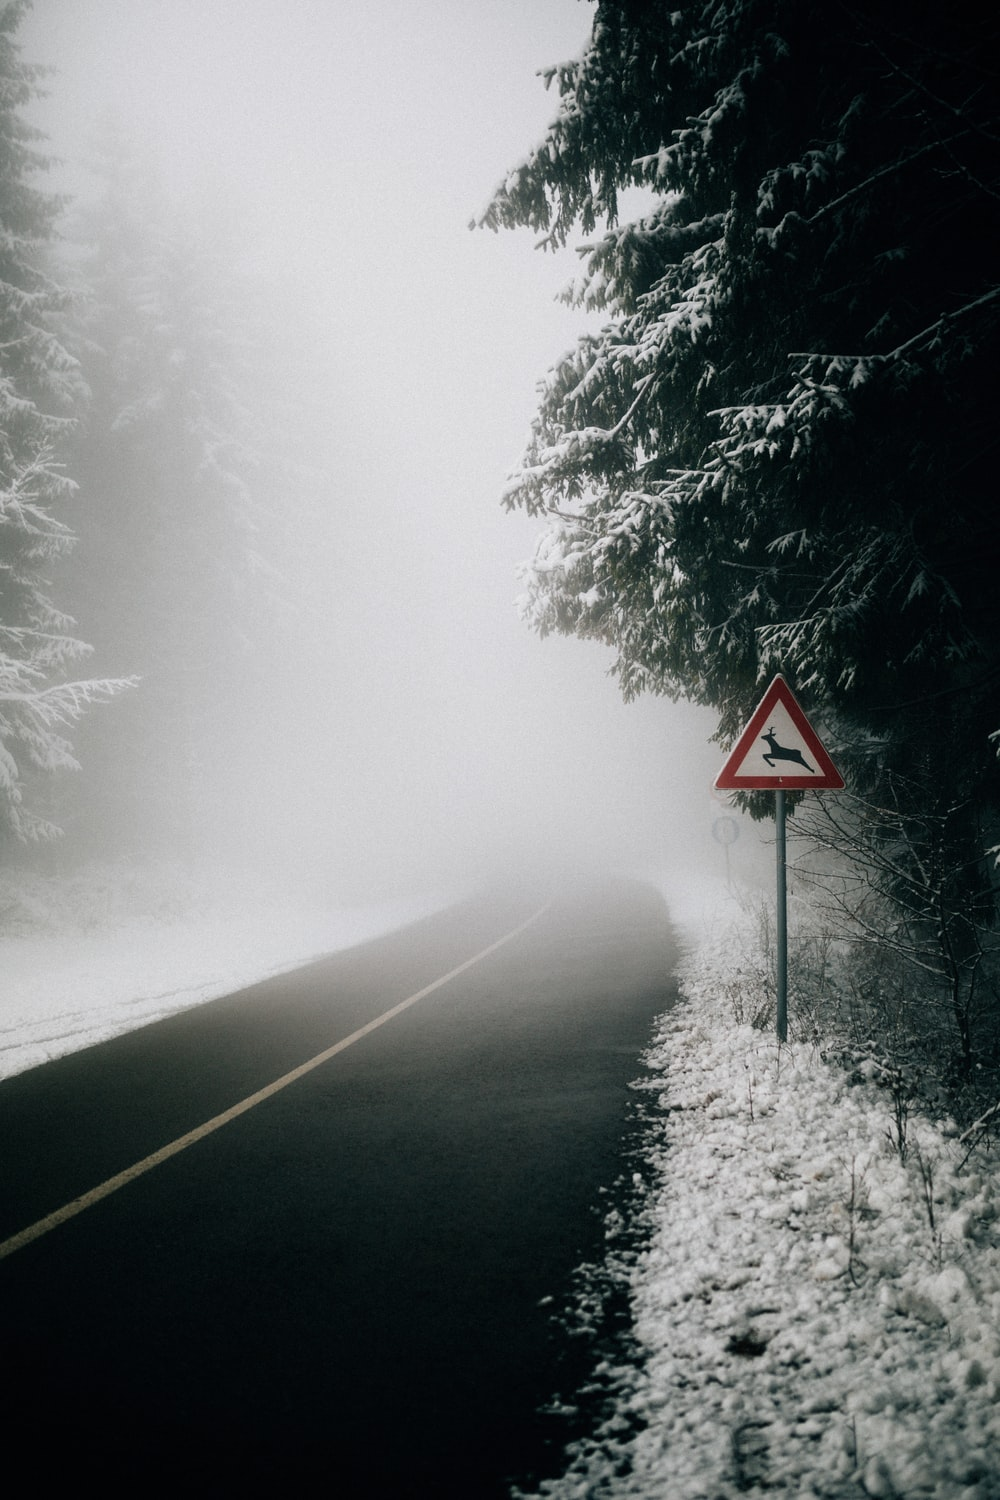 black asphalt road surrounded with trees and covered with white thick fog